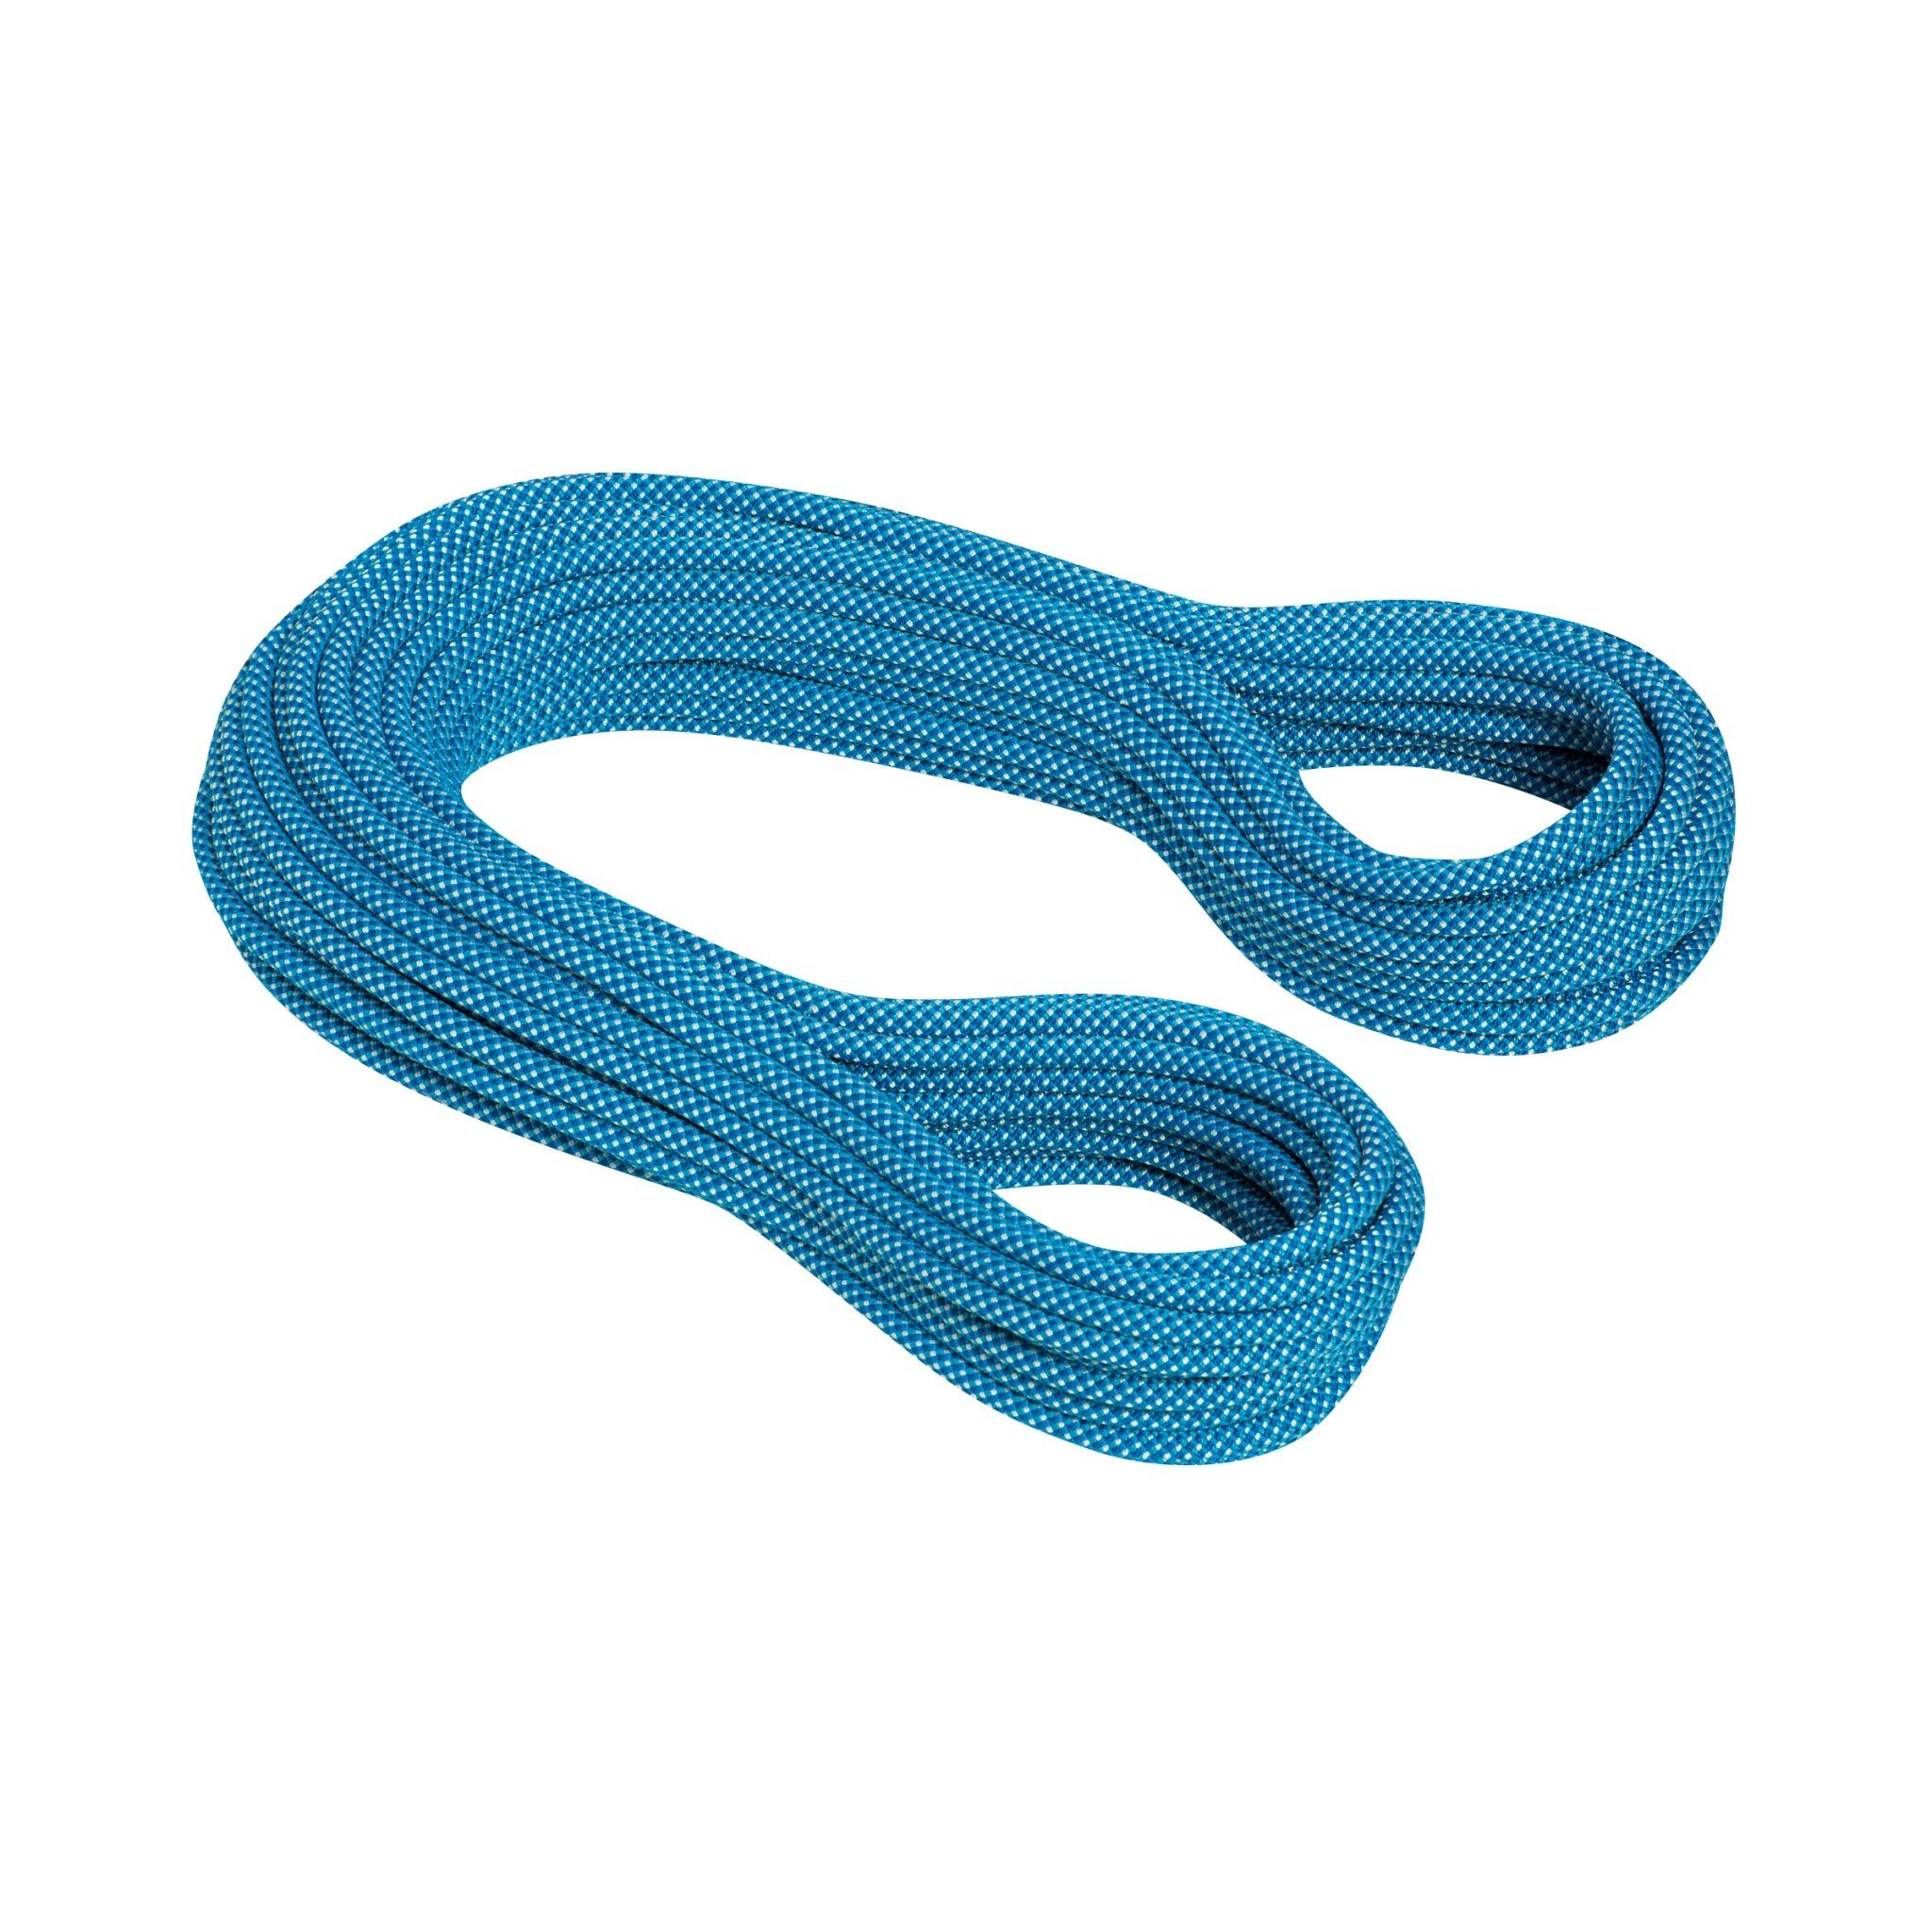 Mammut Kletterseil »Infinity Classic 9.5 Rope 40m«